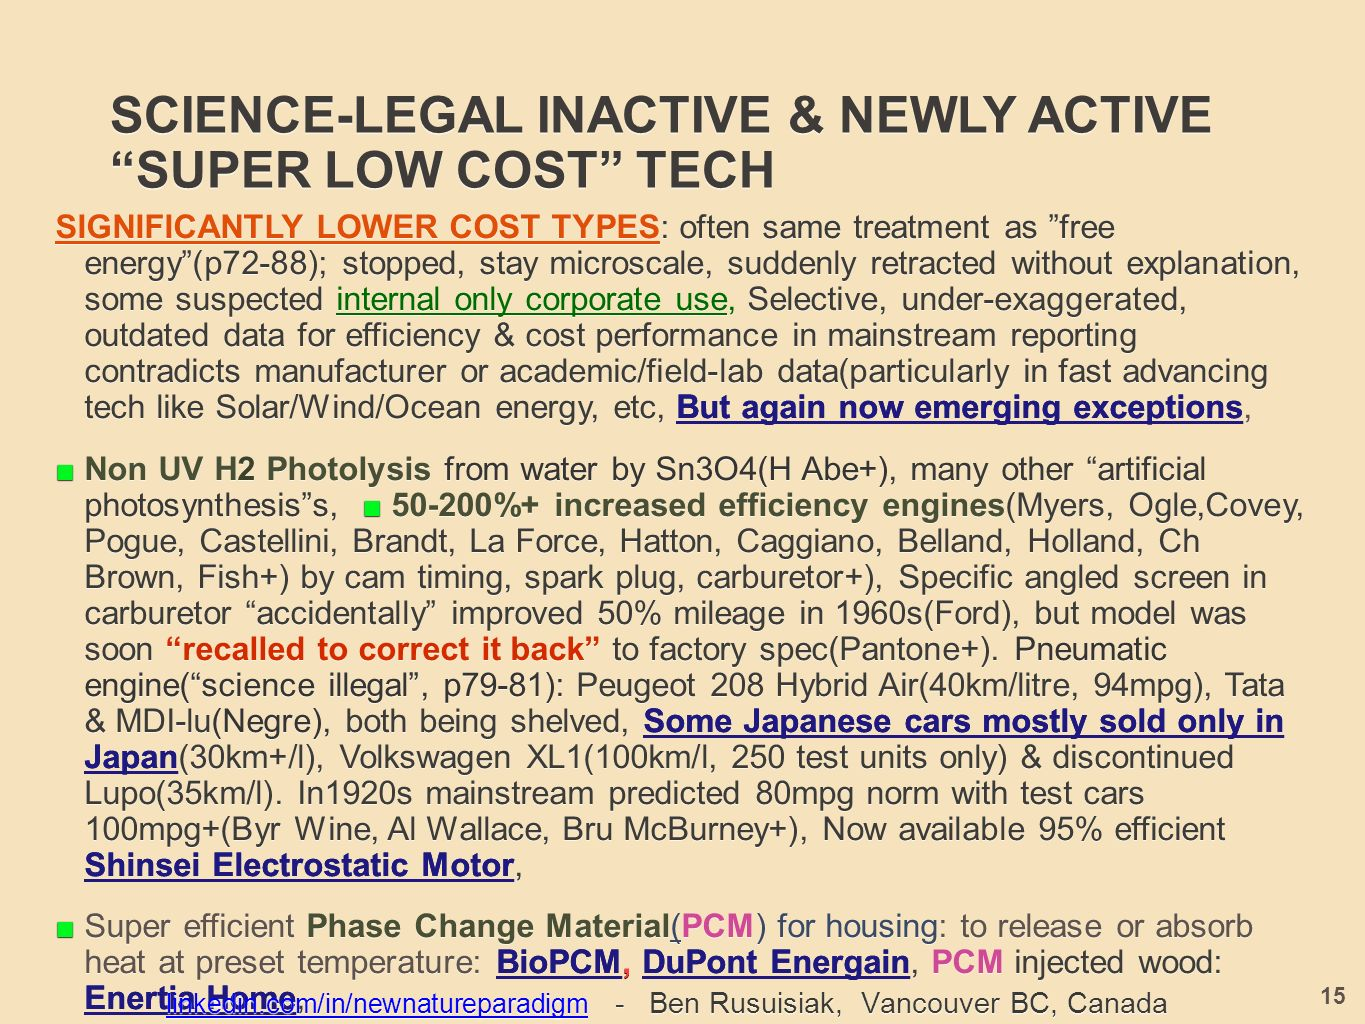 SCIENCE-LEGAL INACTIVE & NEWLY ACTIVE SUPER LOW COST TECH SIGNIFICANTLY LOWER COST TYPES: often same treatment as free energy (p72-88); stopped, stay microscale, suddenly retracted without explanation, some suspected internal only corporate use, Selective, under-exaggerated, outdated data for efficiency & cost performance in mainstream reporting contradicts manufacturer or academic/field-lab data(particularly in fast advancing tech like Solar/Wind/Ocean energy, etc, But again now emerging exceptions, SIGNIFICANTLY LOWER COST TYPES: often same treatment as free energy (p72-88); stopped, stay microscale, suddenly retracted without explanation, some suspected internal only corporate use, Selective, under-exaggerated, outdated data for efficiency & cost performance in mainstream reporting contradicts manufacturer or academic/field-lab data(particularly in fast advancing tech like Solar/Wind/Ocean energy, etc, But again now emerging exceptions, ■ Non UV H2 Photolysis from water by Sn3O4(H Abe+), many other artificial photosynthesis s, ■ %+ increased efficiency engines(Myers, Ogle,Covey, Pogue, Castellini, Brandt, La Force, Hatton, Caggiano, Belland, Holland, Ch Brown, Fish+) by cam timing, spark plug, carburetor+), Specific angled screen in carburetor accidentally improved 50% mileage in 1960s(Ford), but model was soon recalled to correct it back to factory spec(Pantone+).